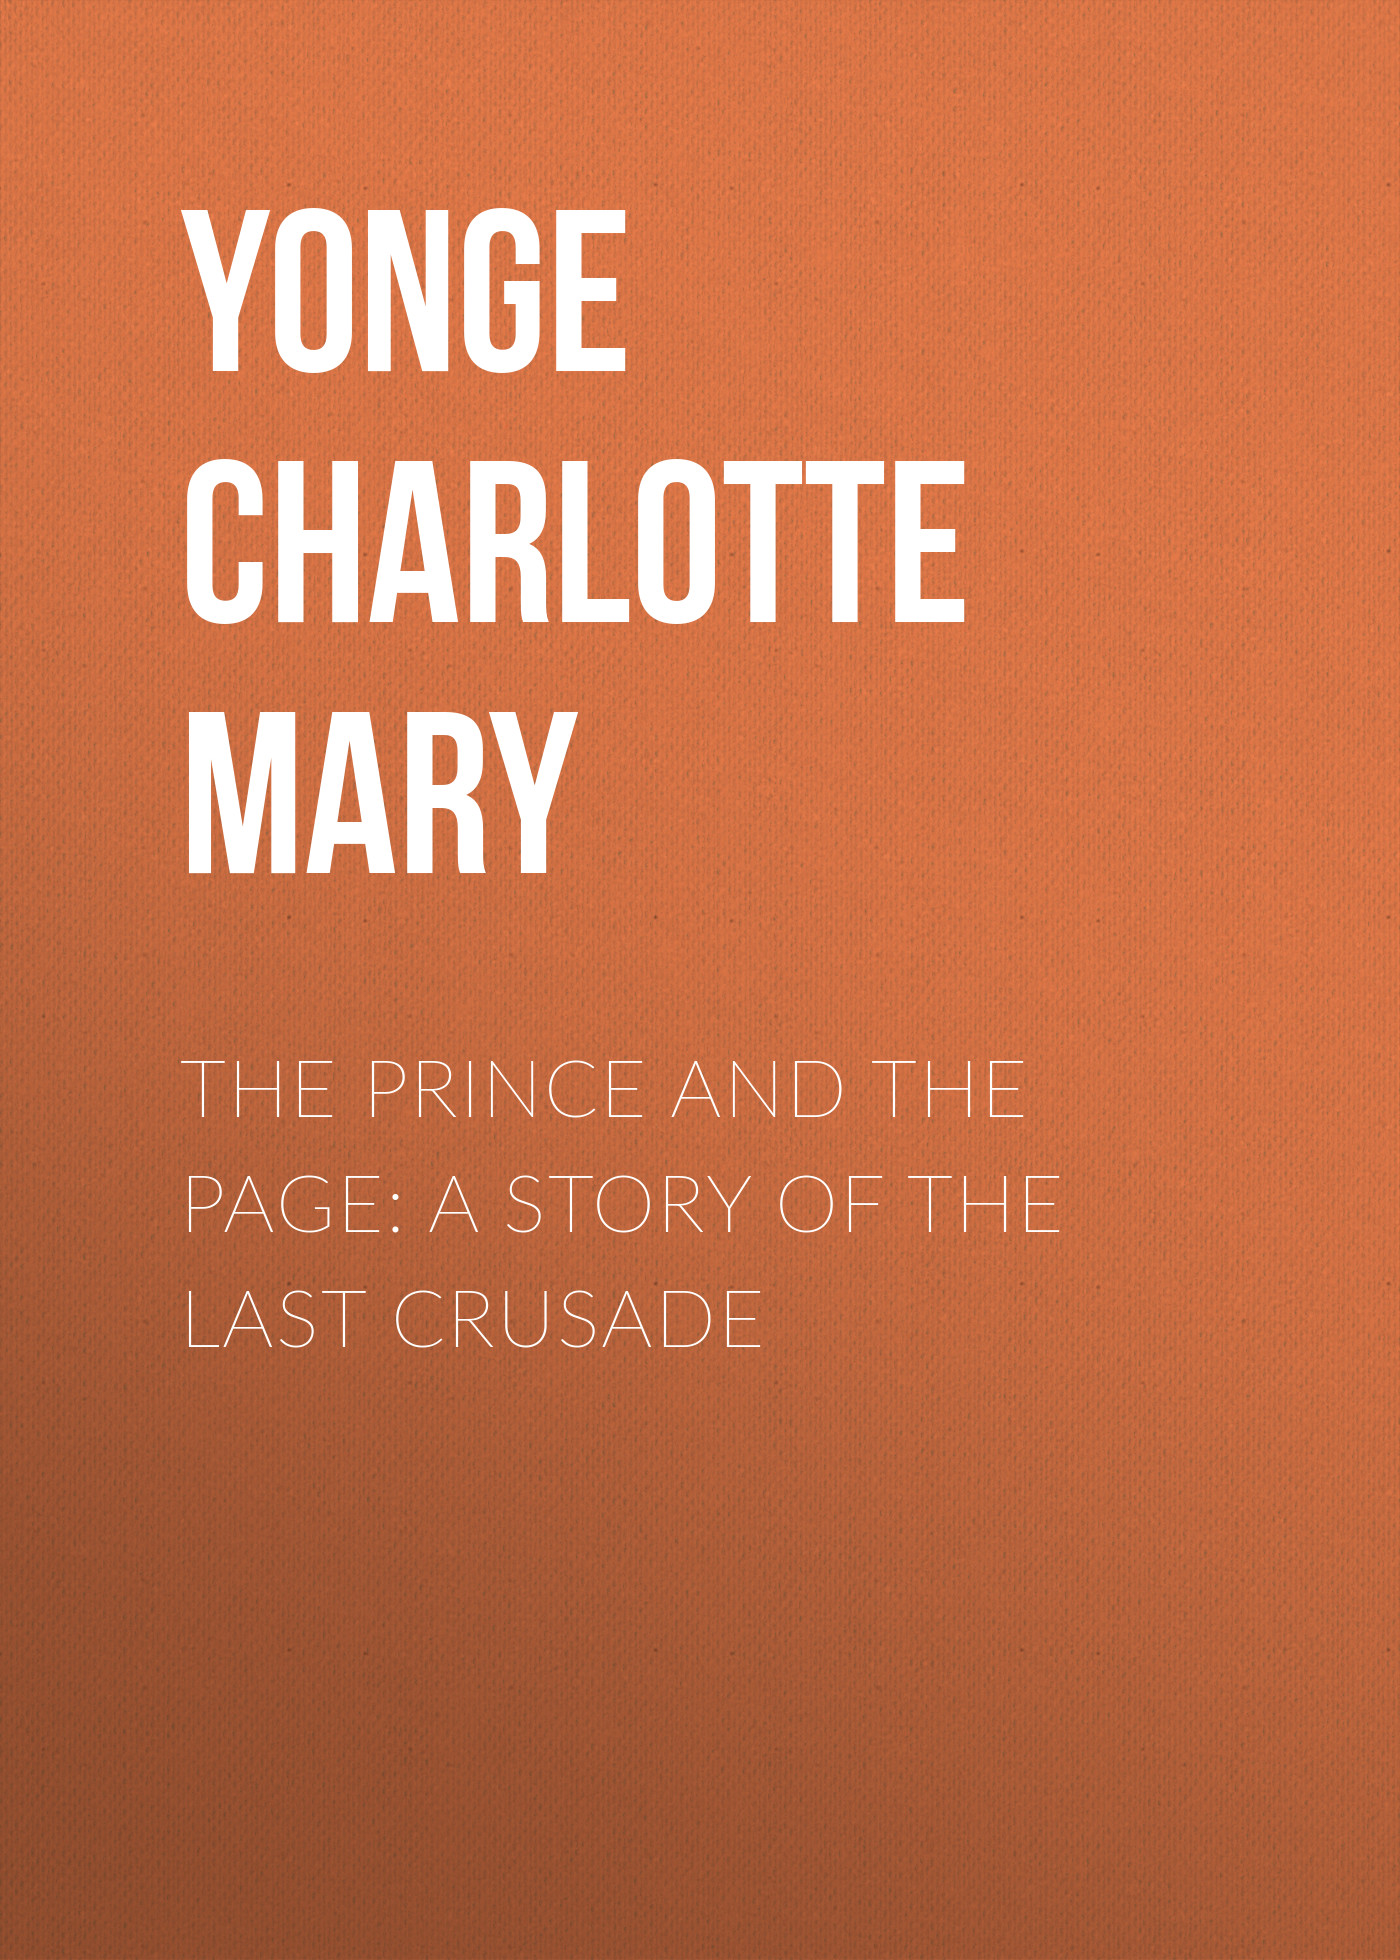 Yonge Charlotte Mary The Prince and the Page: A Story of the Last Crusade coat melisita page 16 page 5 page 16